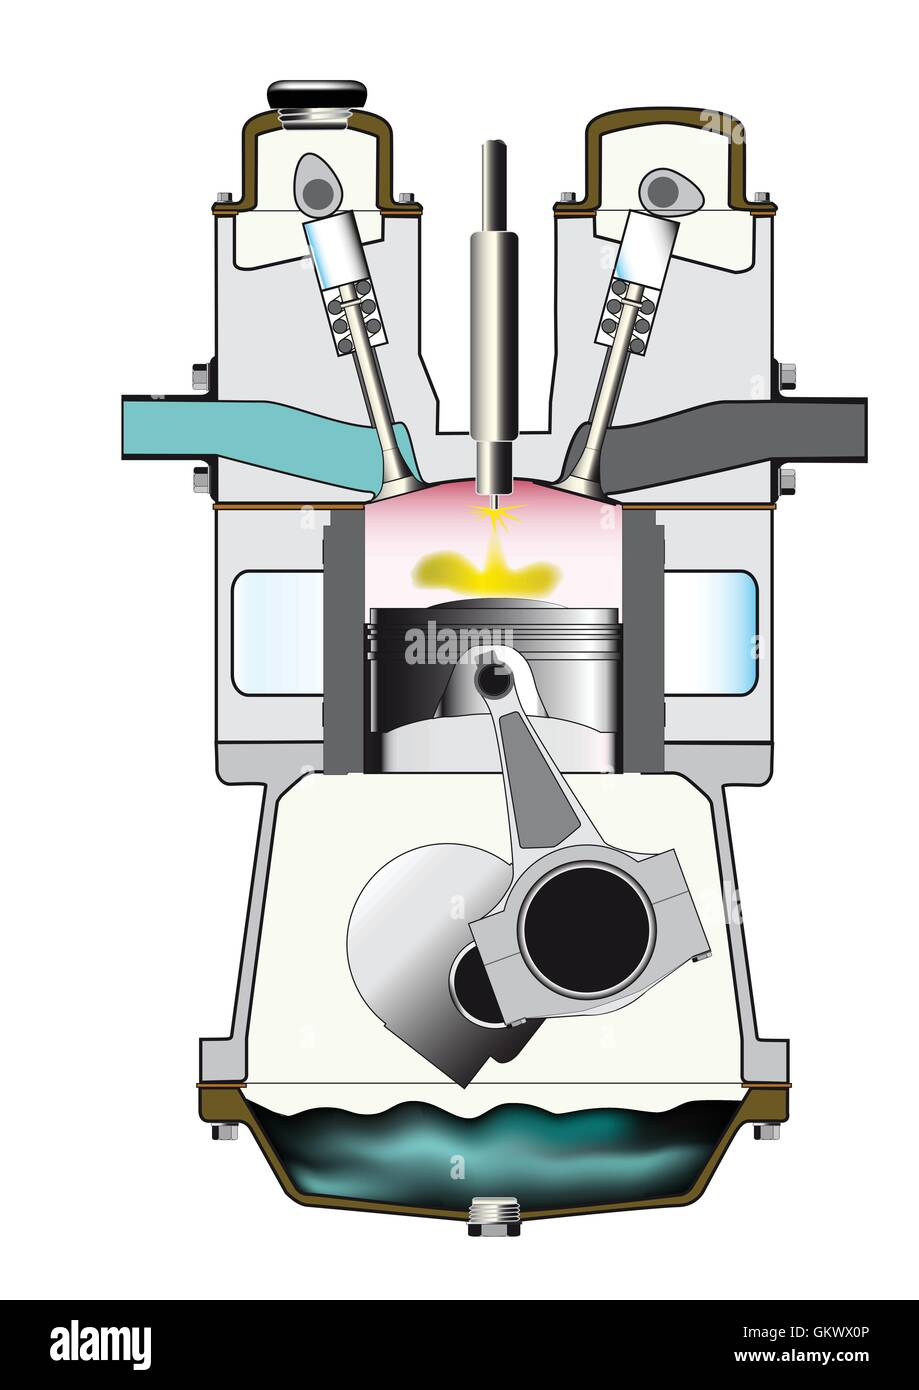 Diesel Fuel Injection Ignition Stroke - Stock Vector